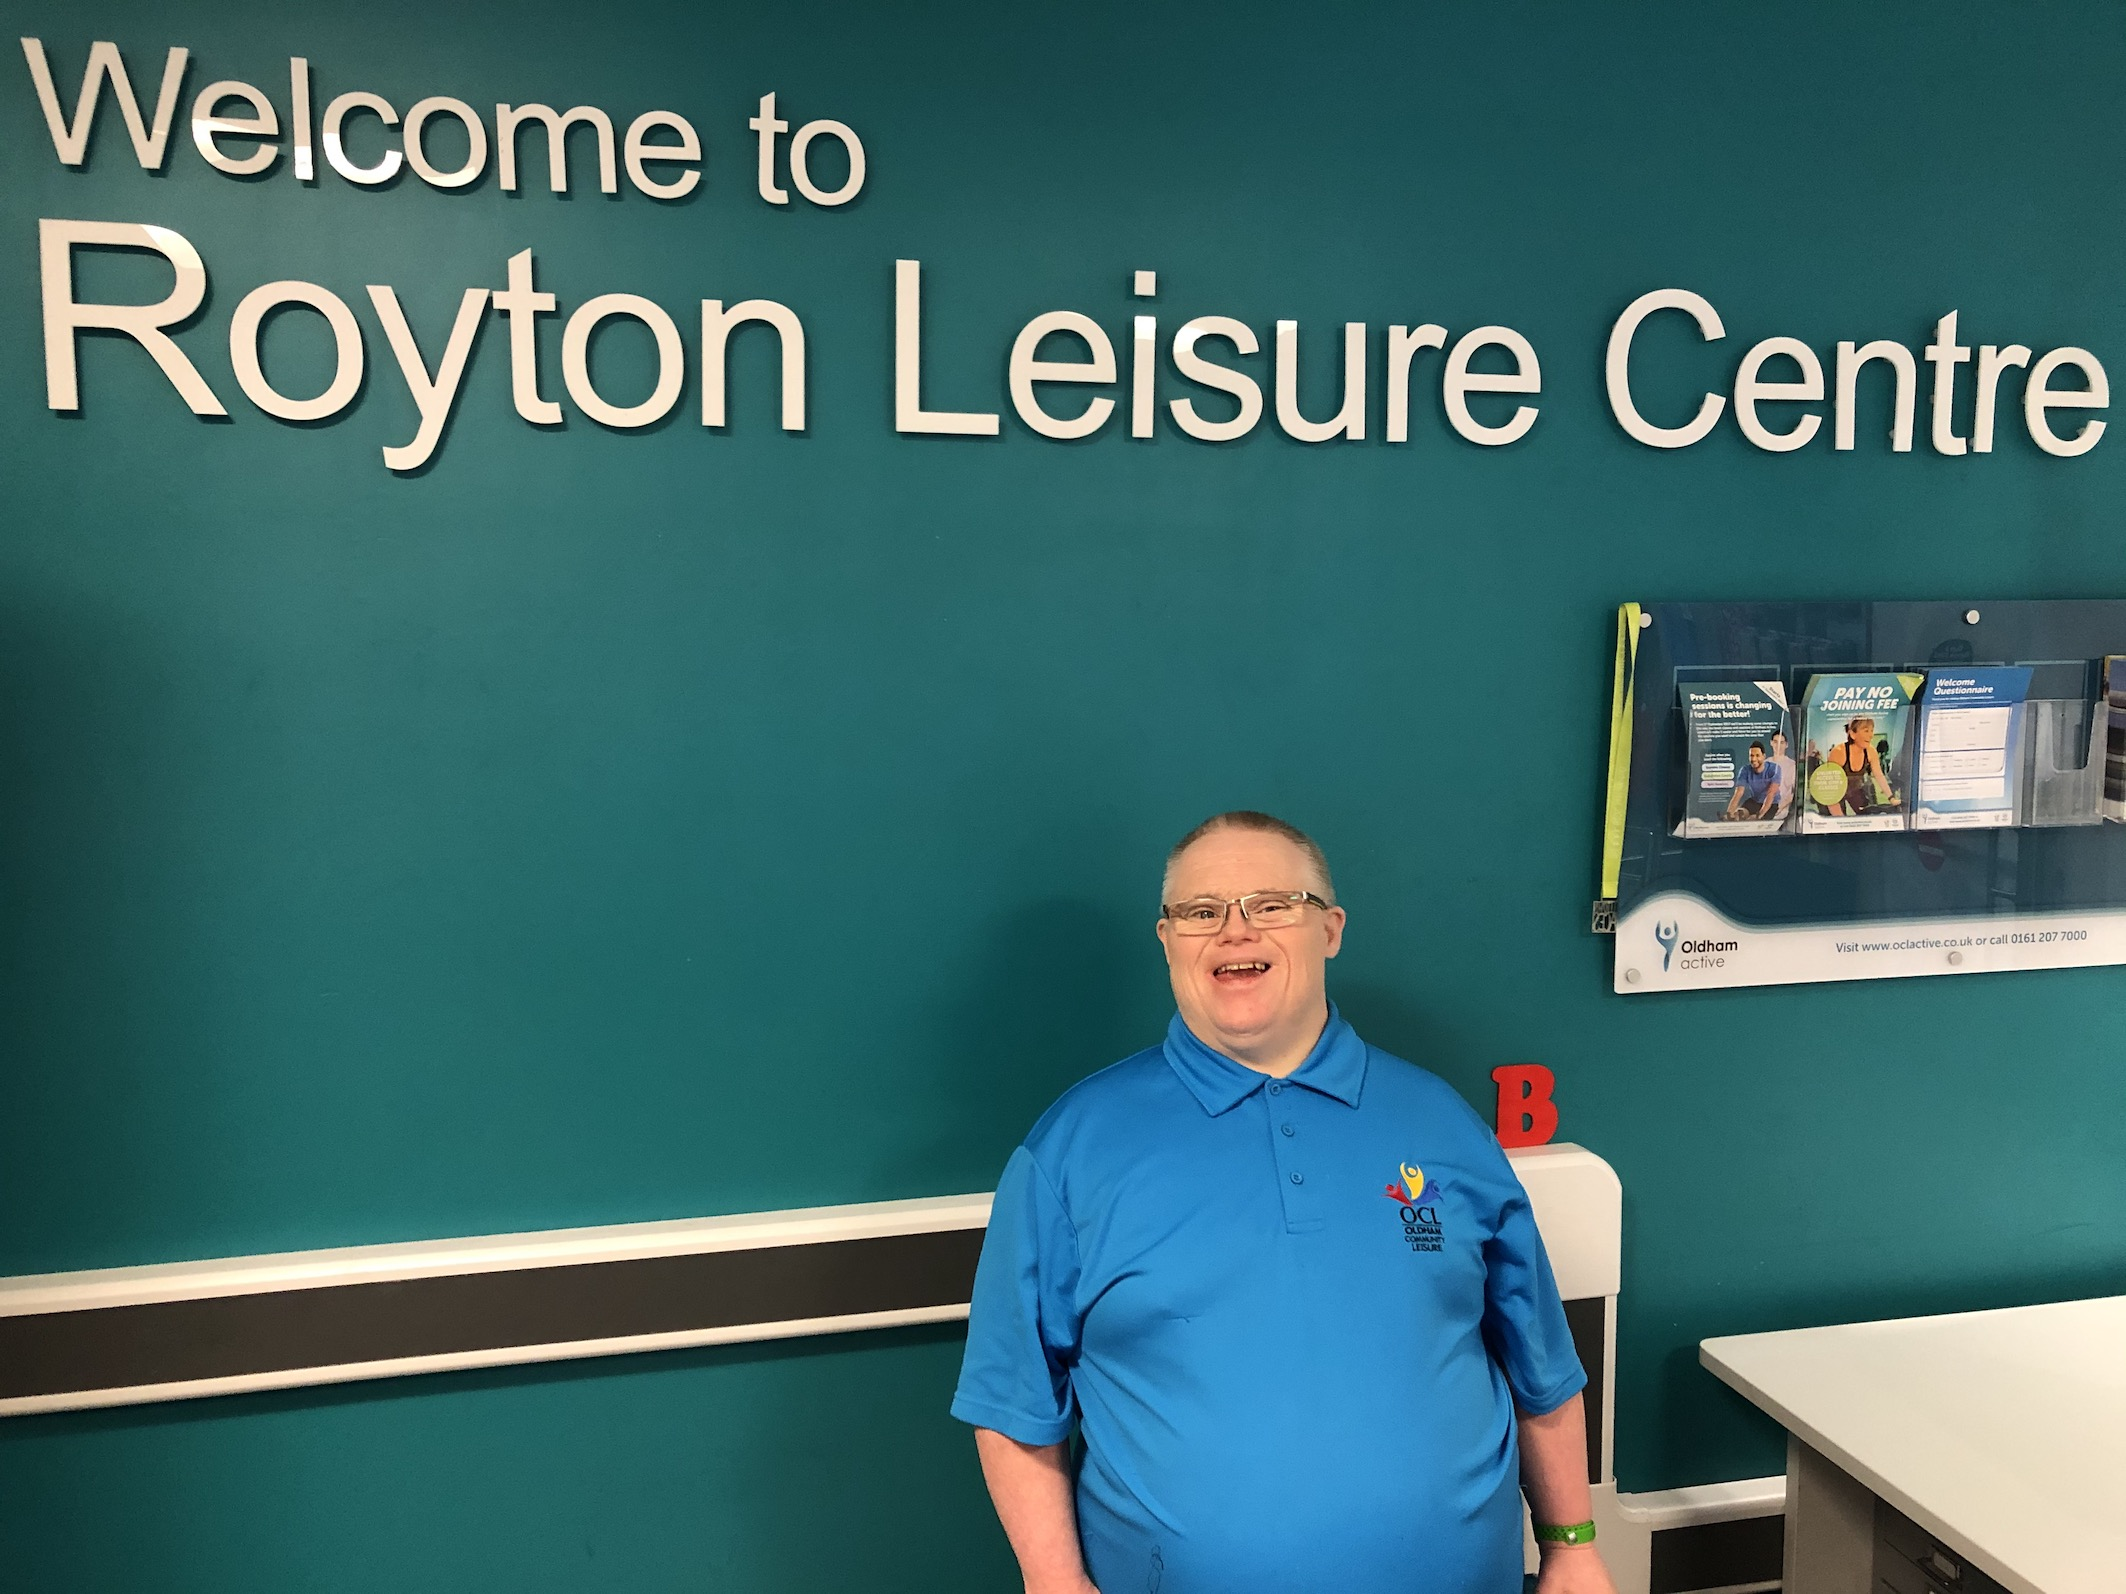 John Carhart at Royton Leisure Centre